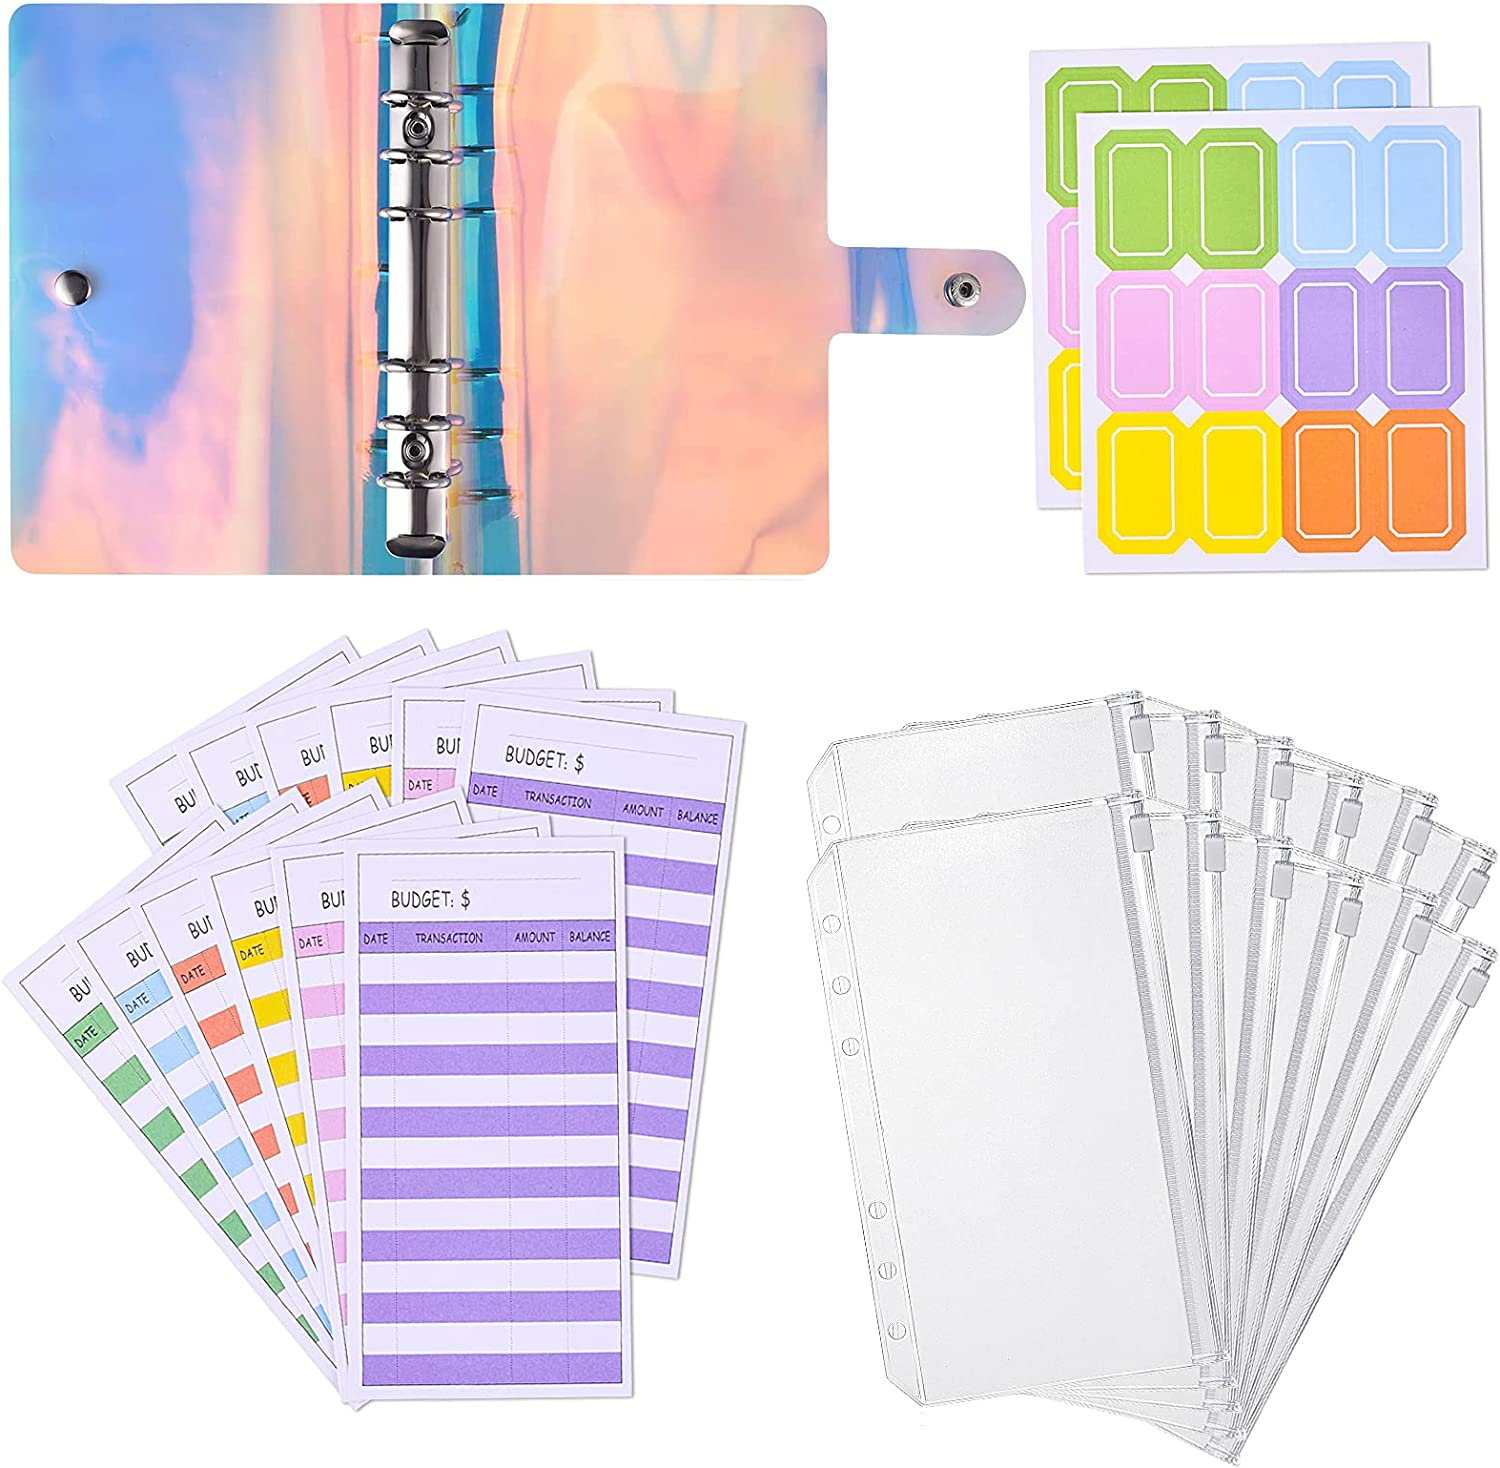 A6 PVC Notebook Binder Cover with 12PCS A6 Binder Pockets, 12PCS Expense Budget Sheets, 24PCS Colorful Sticker Labels, Waterproof 6-Ring Budget Binder Money Saving Cash Envelopes System - iridescent